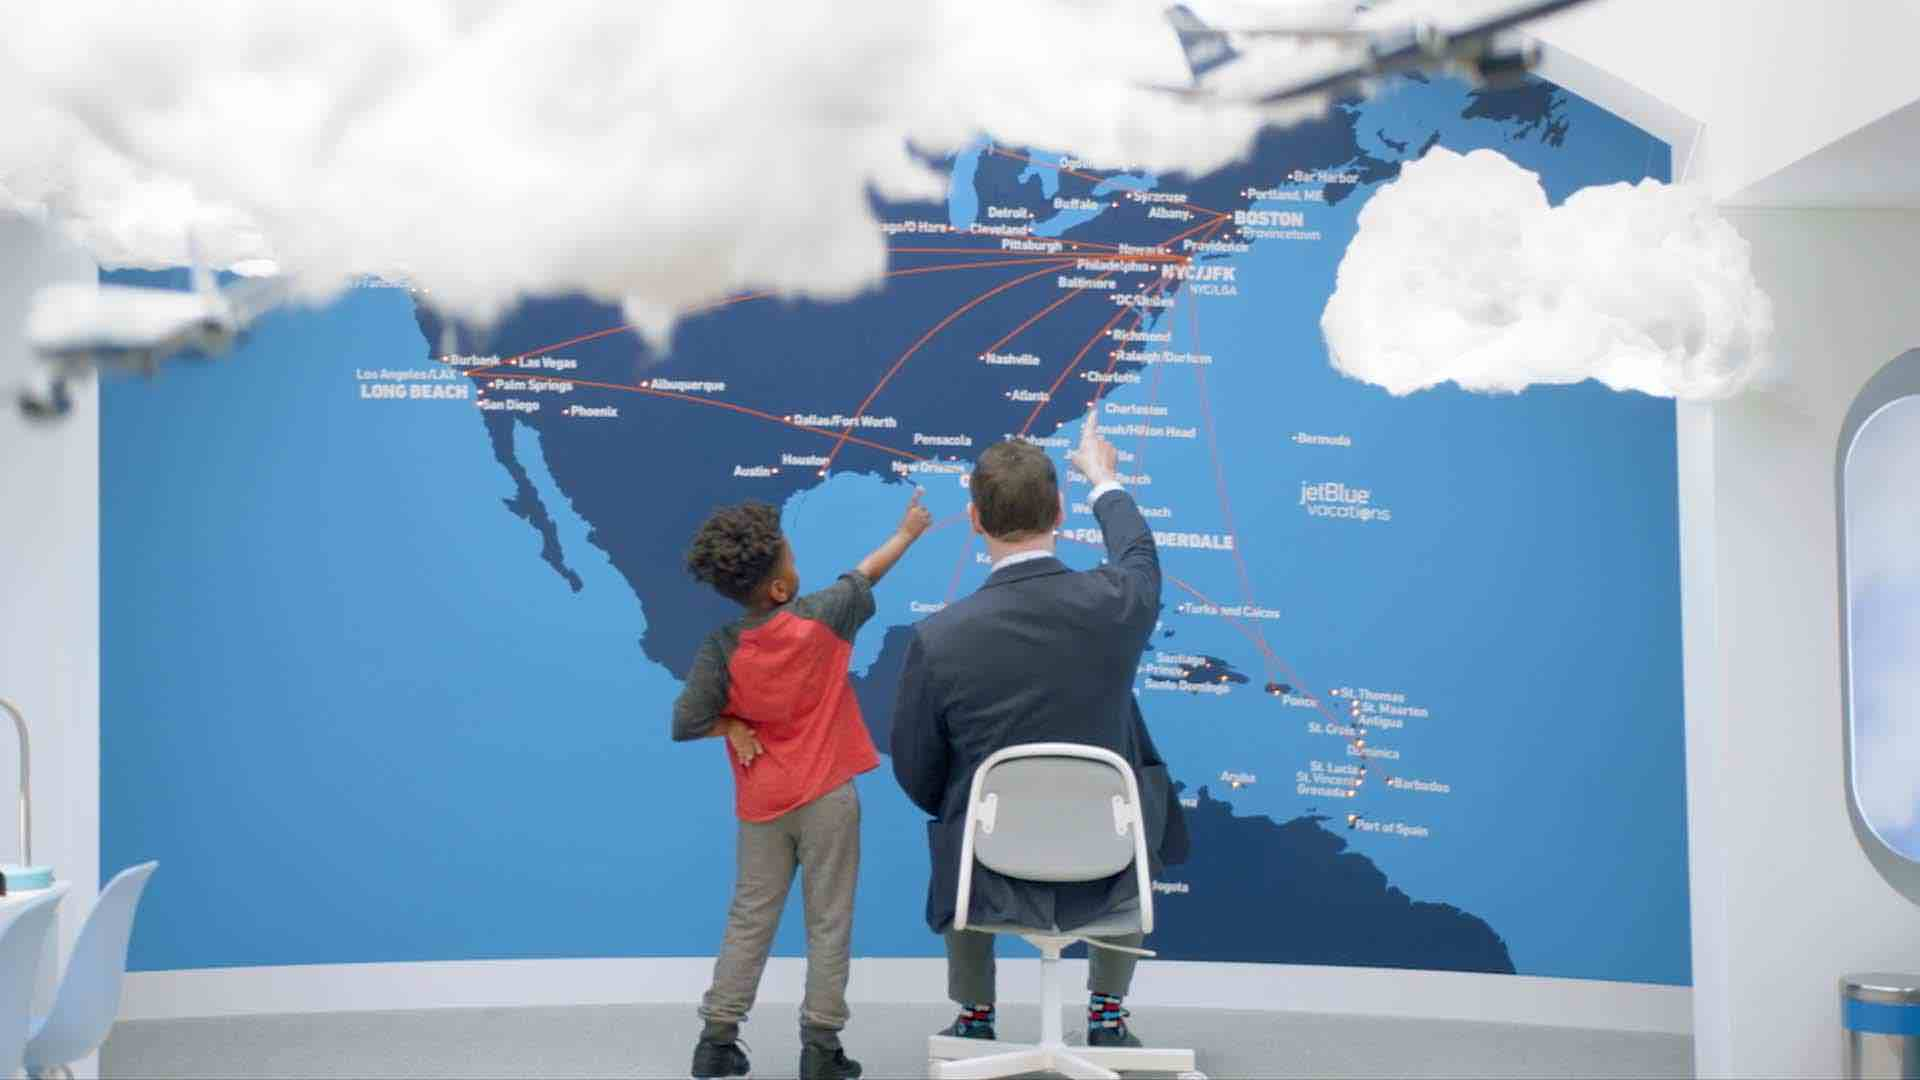 Thumbnail for a commercial for JetBlue called 'Little Tickets' showing a man and a young boy pointing at a map of flight paths.